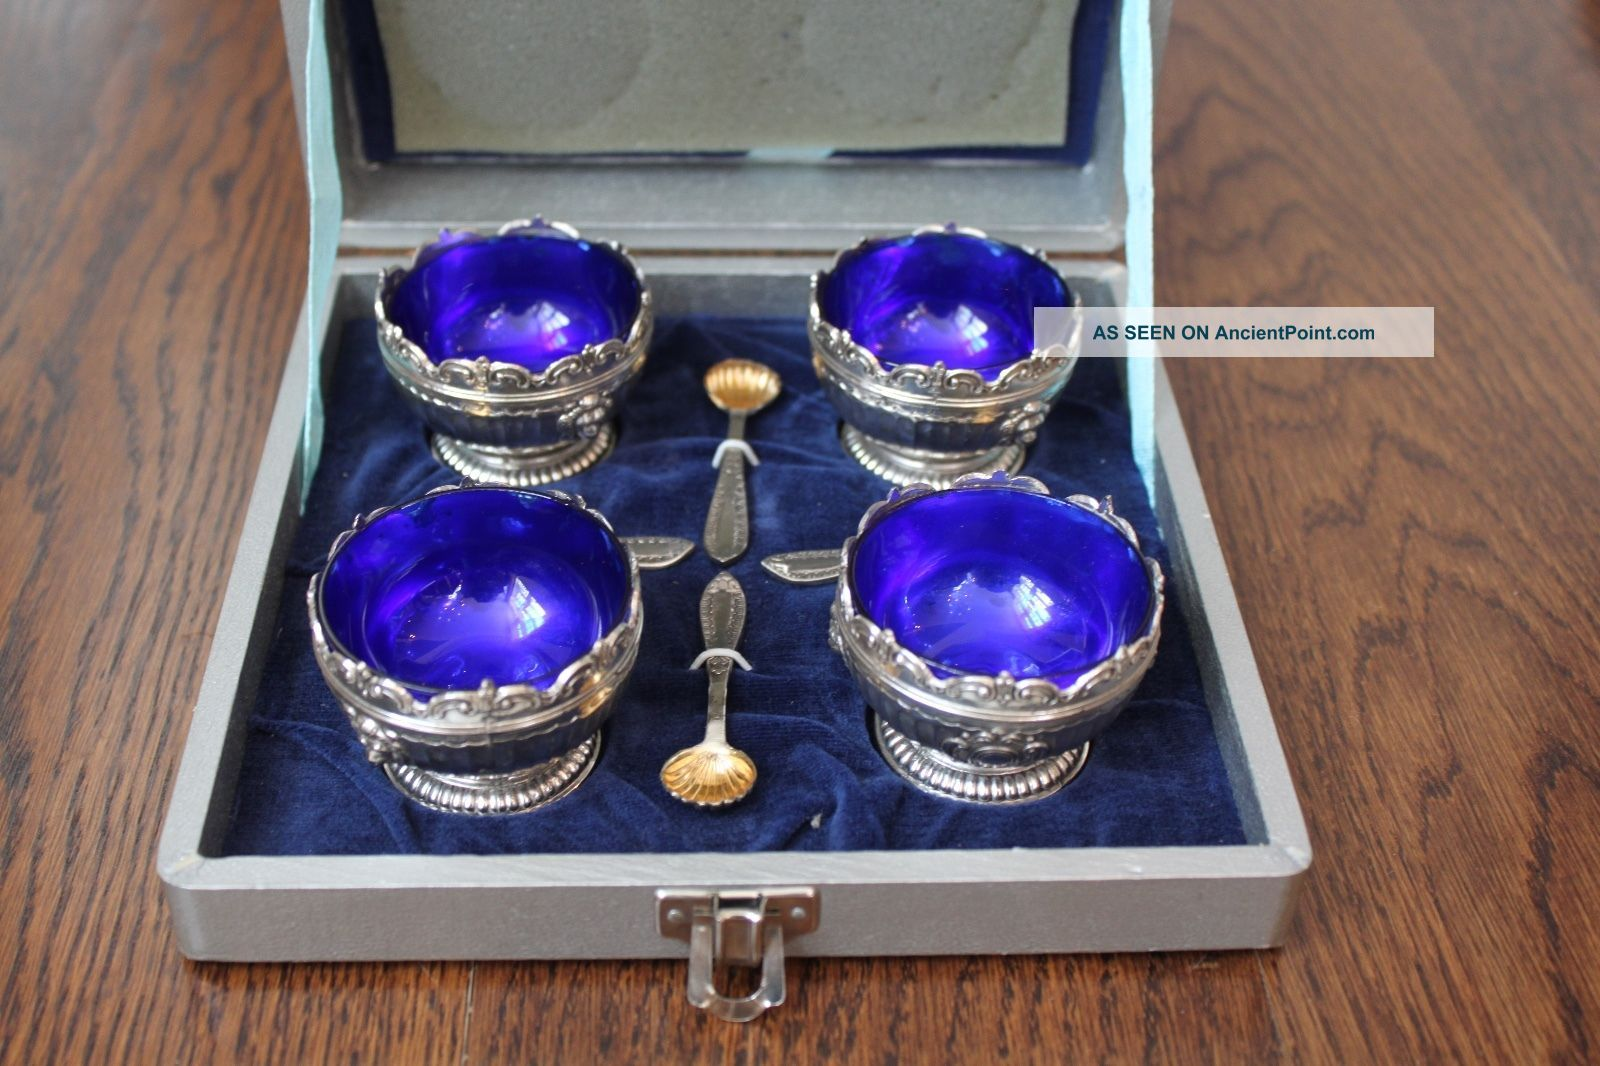 (4) Wm Mtg Co.  Cobalt Blue Glass Silver Salt Cellar With Spoon Box Salt Cellars photo